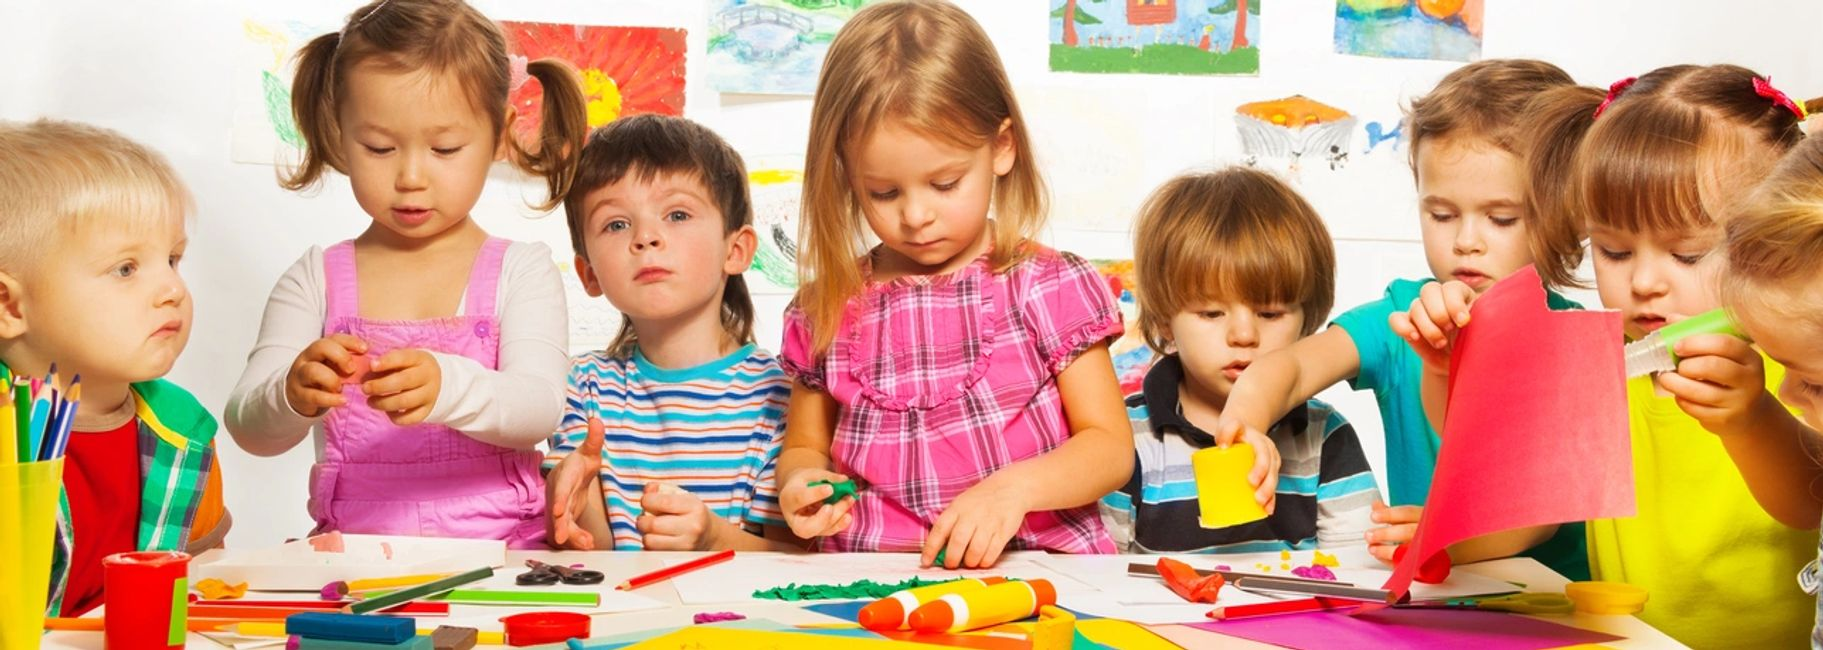 daycare in Great Falls, Christian Preschool, preschool, Wee Disciples